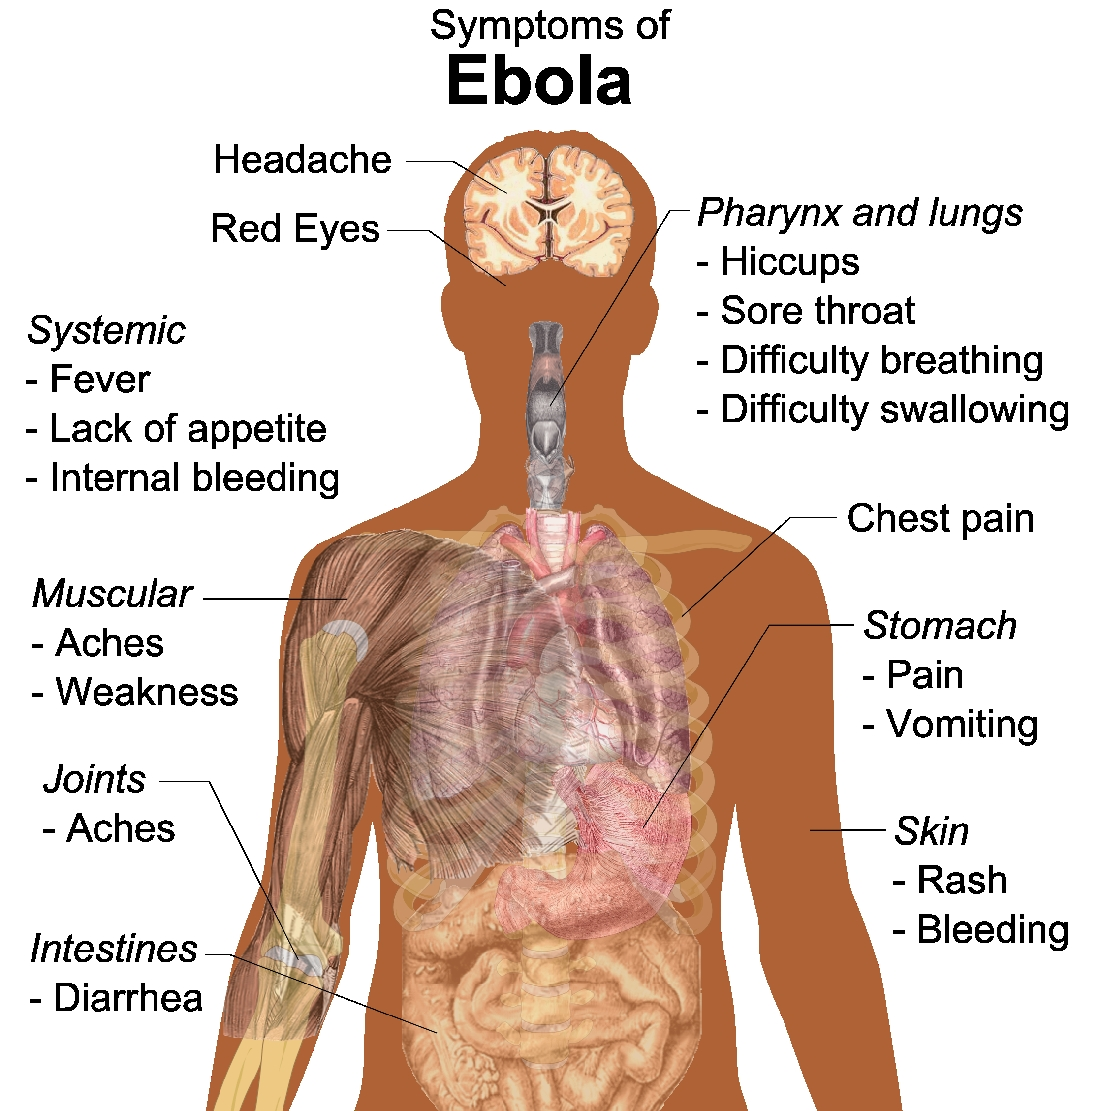 understanding how the ebola virus works in the body The ebola virus had understanding ebola requires an understanding of viruses and how they work online editorial production assistant at the pbs newshour.